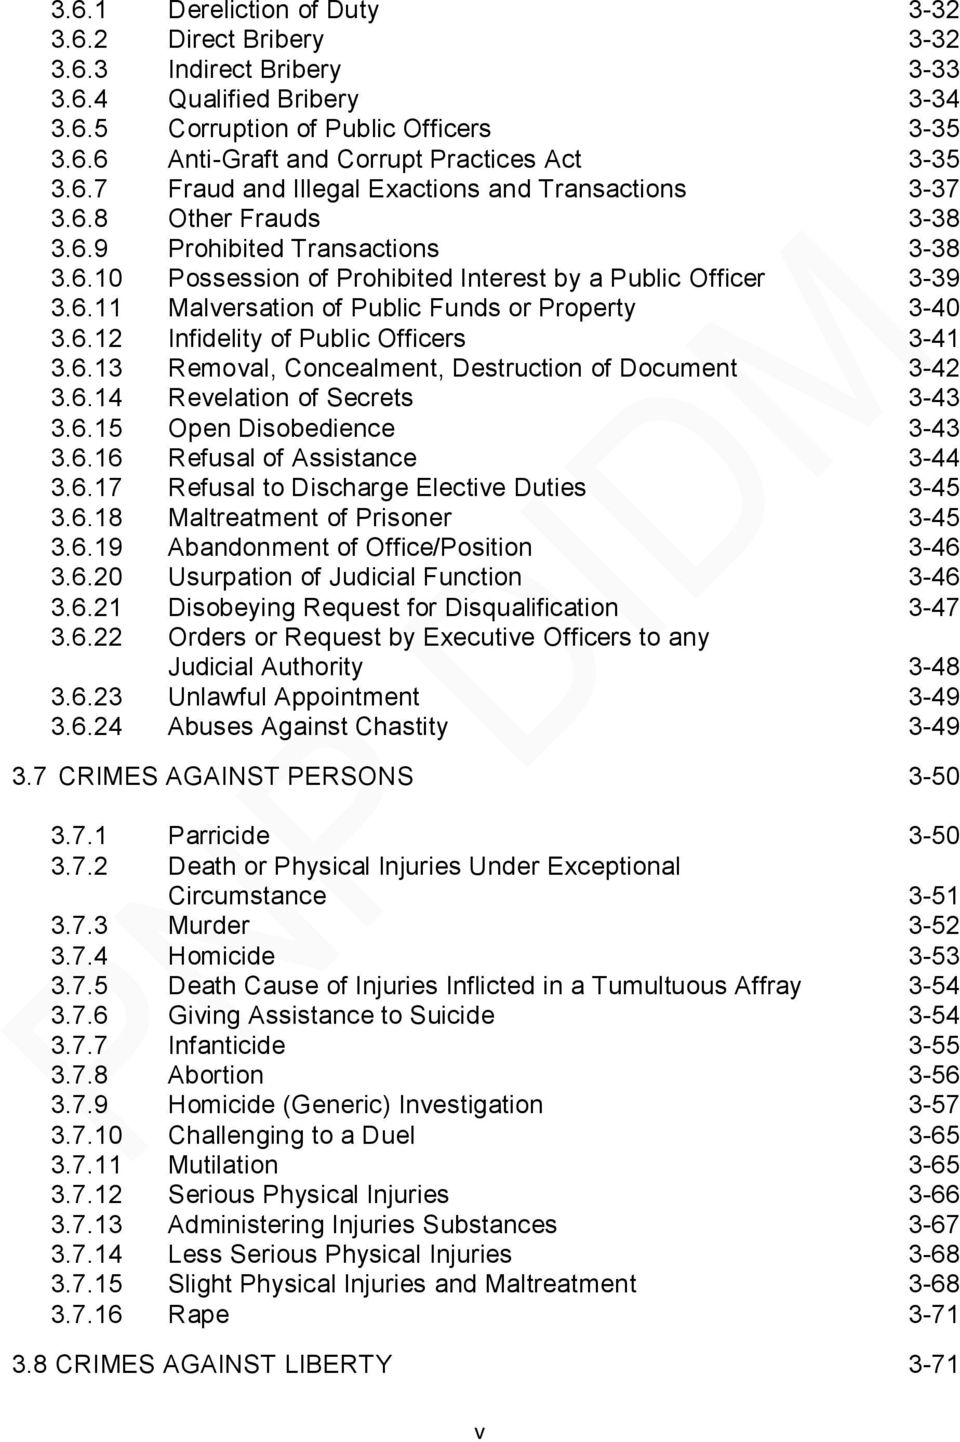 6.12 Infidelity of Public Officers 3-41 3.6.13 Removal, Concealment, Destruction of Document 3-42 3.6.14 Revelation of Secrets 3-43 3.6.15 Open Disobedience 3-43 3.6.16 Refusal of Assistance 3-44 3.6.17 Refusal to Discharge Elective Duties 3-45 3.